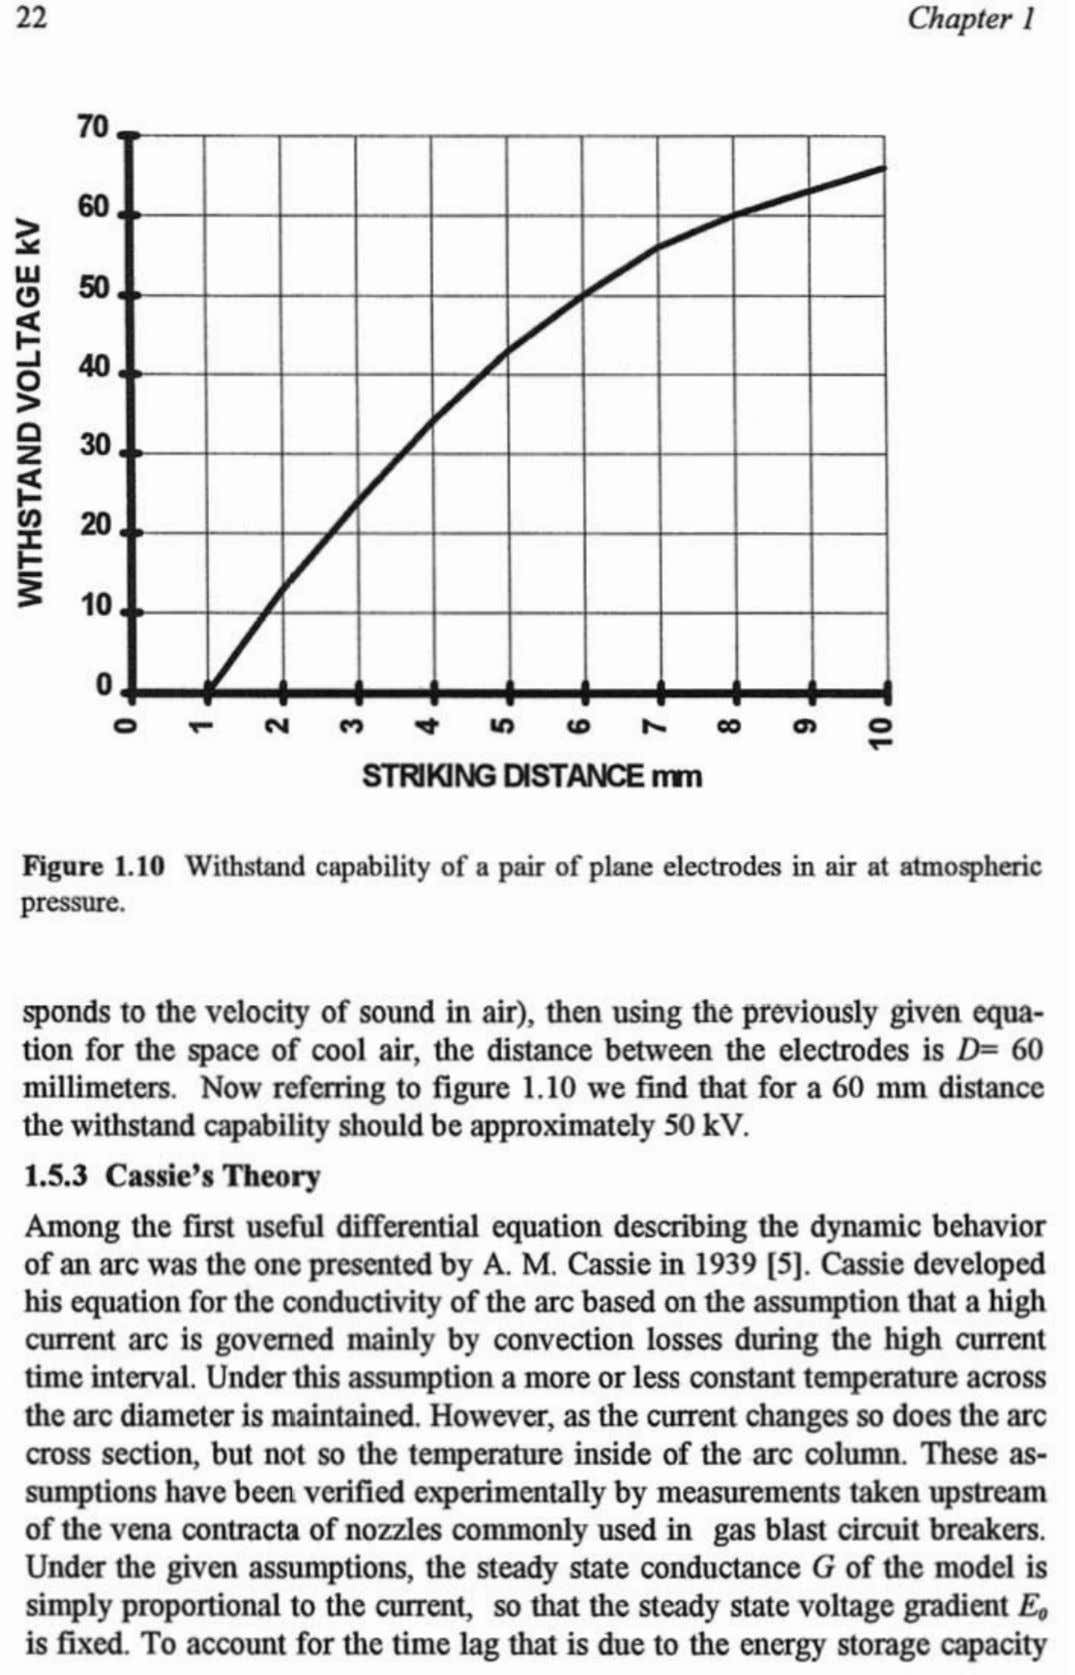 c3 3 > Figure 1.10 Withstand capability of a pair of plane electrodes in air